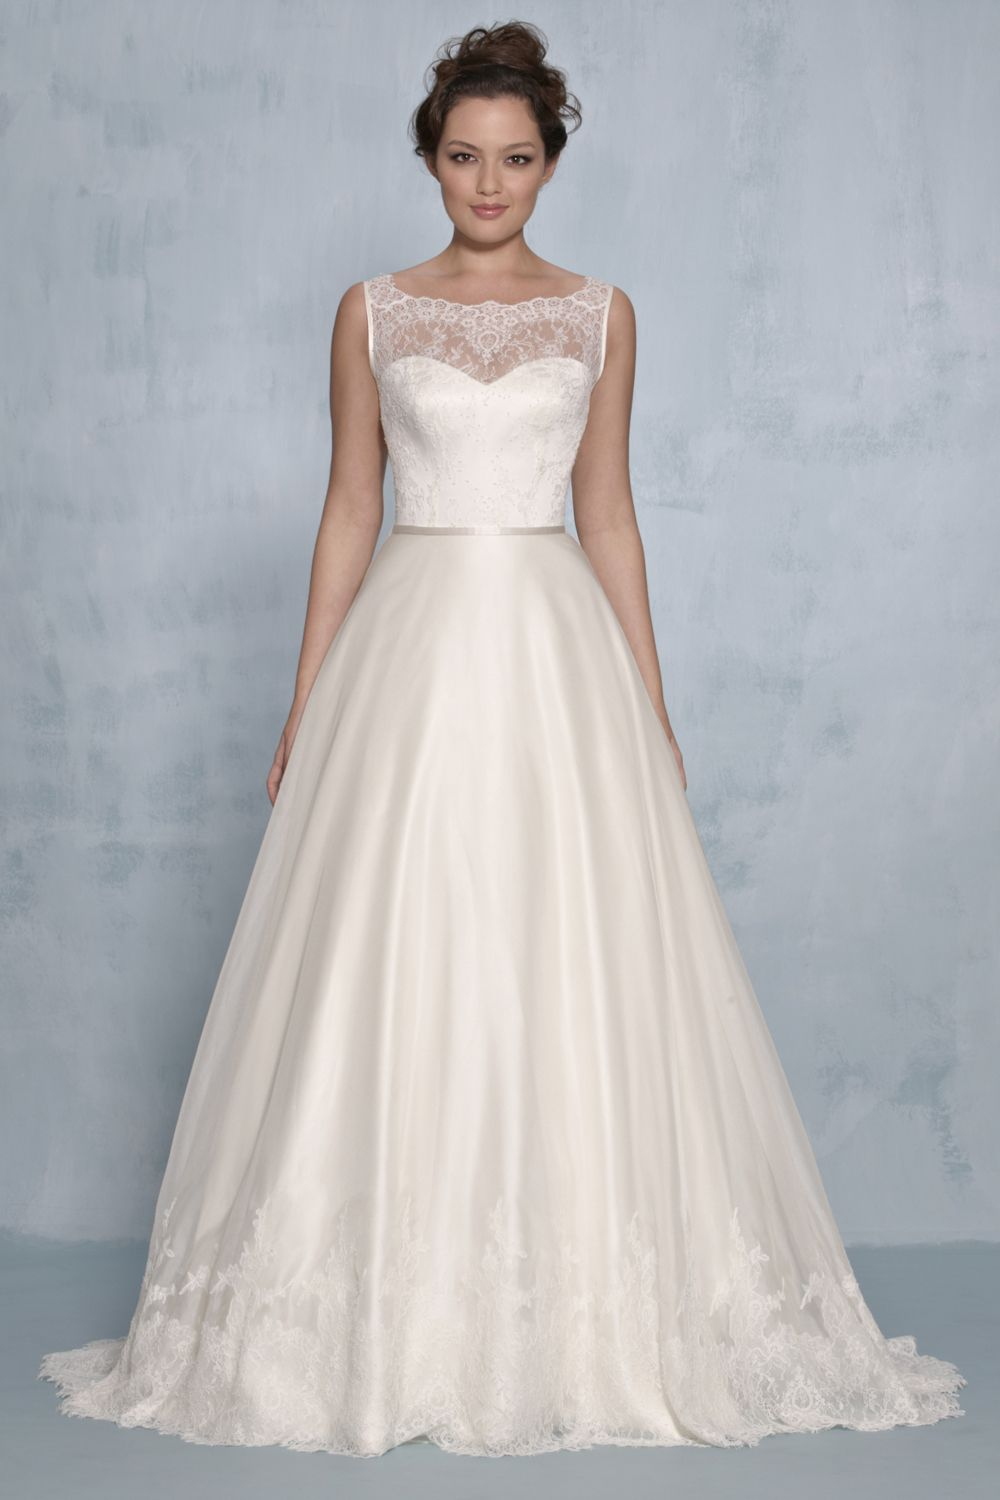 Funky David Jones Bridal Gowns Ensign - All Wedding Dresses ...